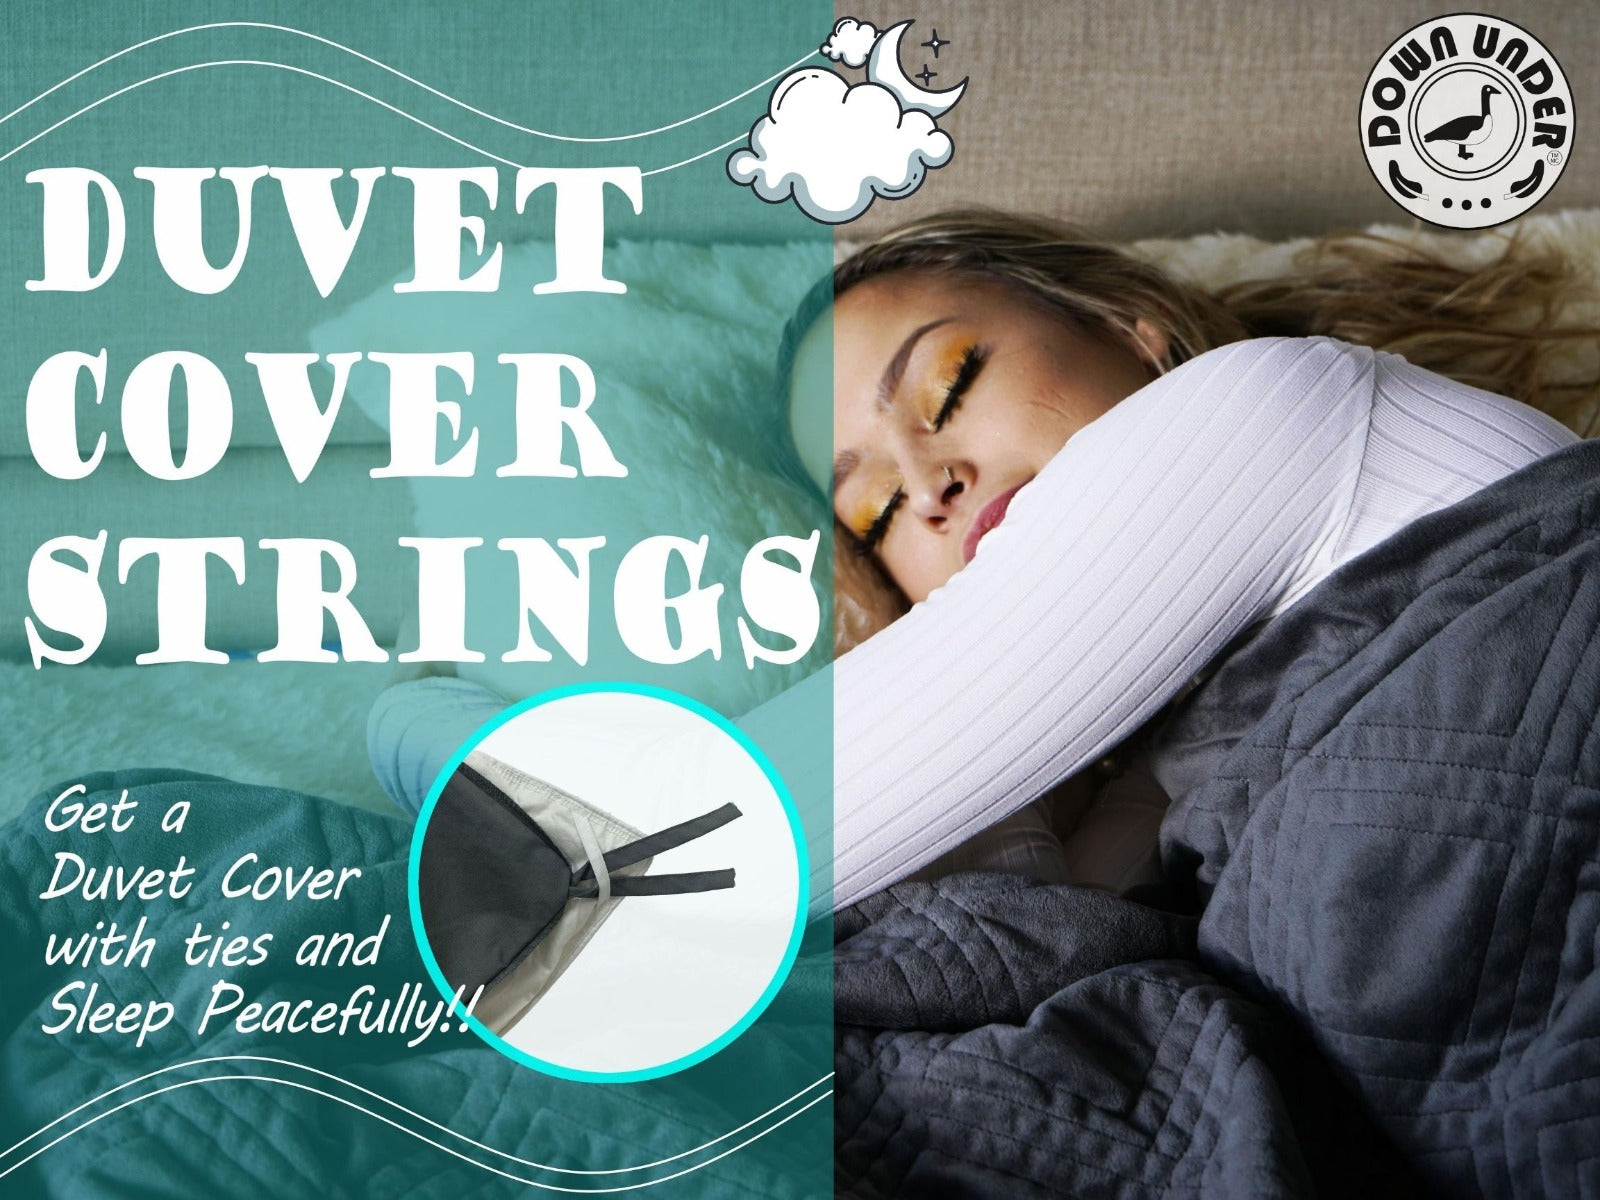 duvet cover ties